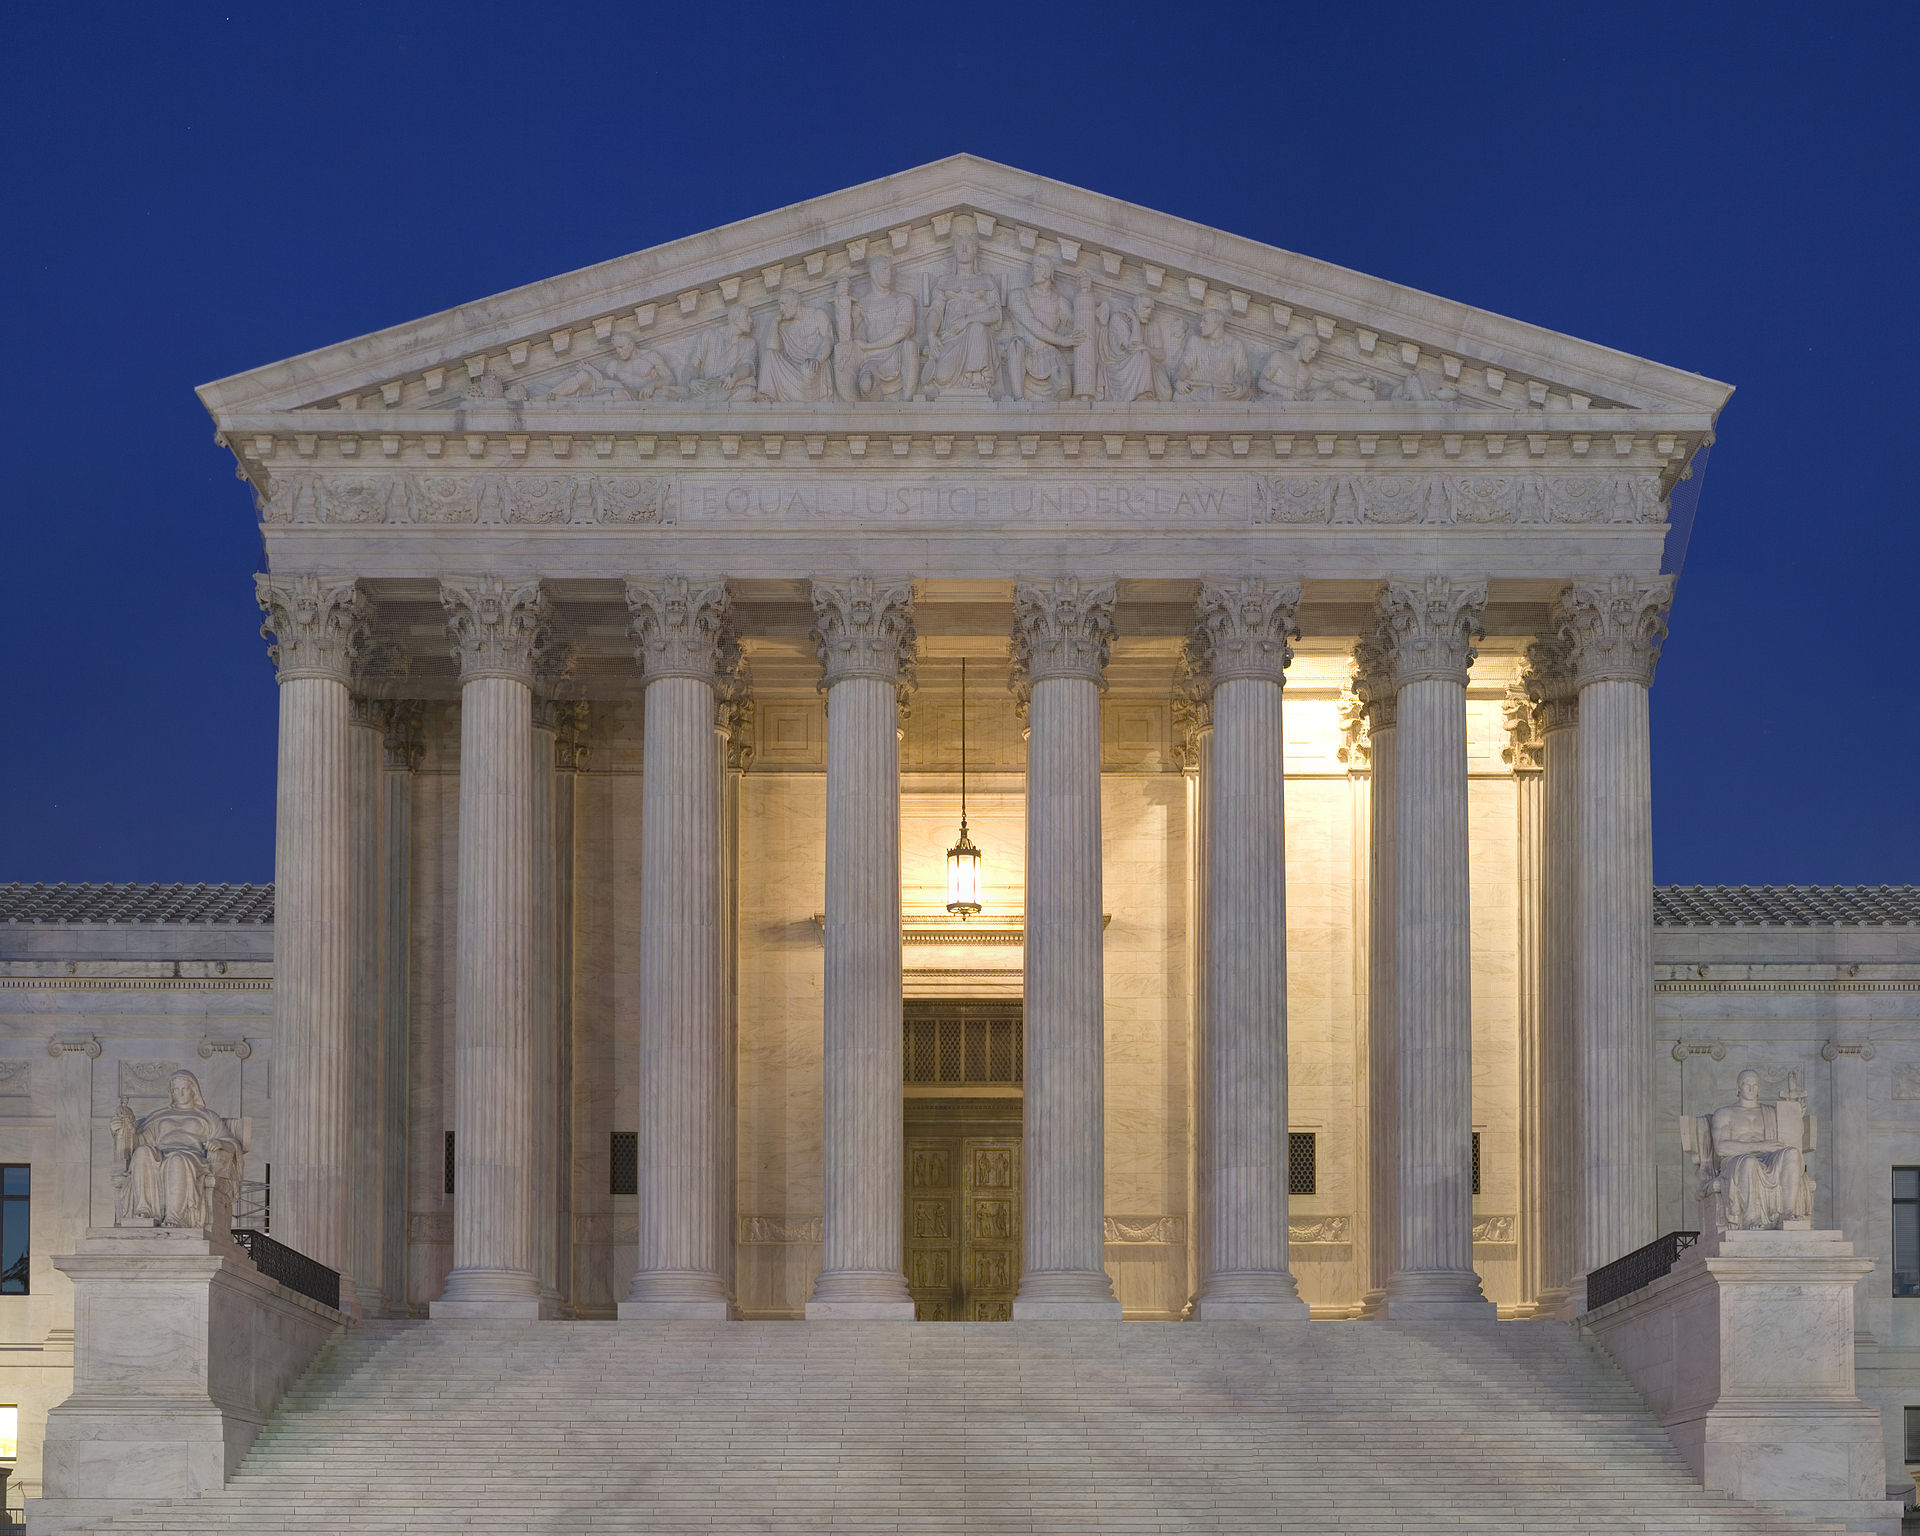 Photo: Wikimedia Commons, https://commons.wikimedia.org/wiki/Supreme_Court_of_the_United_States#/media/File:Supreme_Court_Front_Dusk.jpg